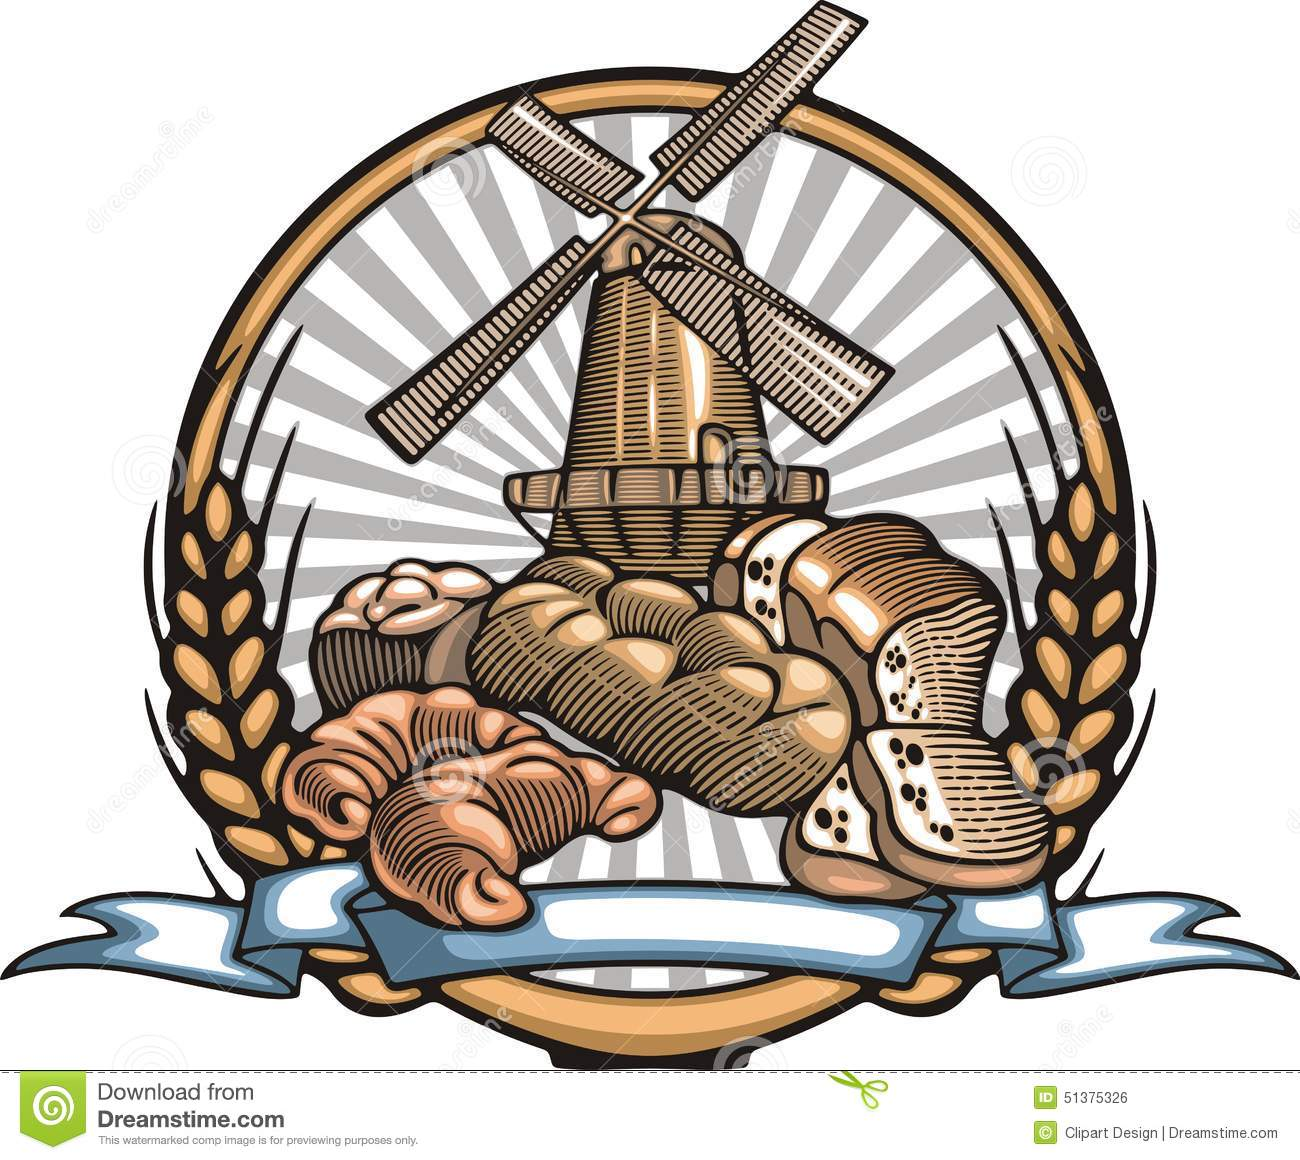 Bread Making Vector Illustration in Woodcut Style